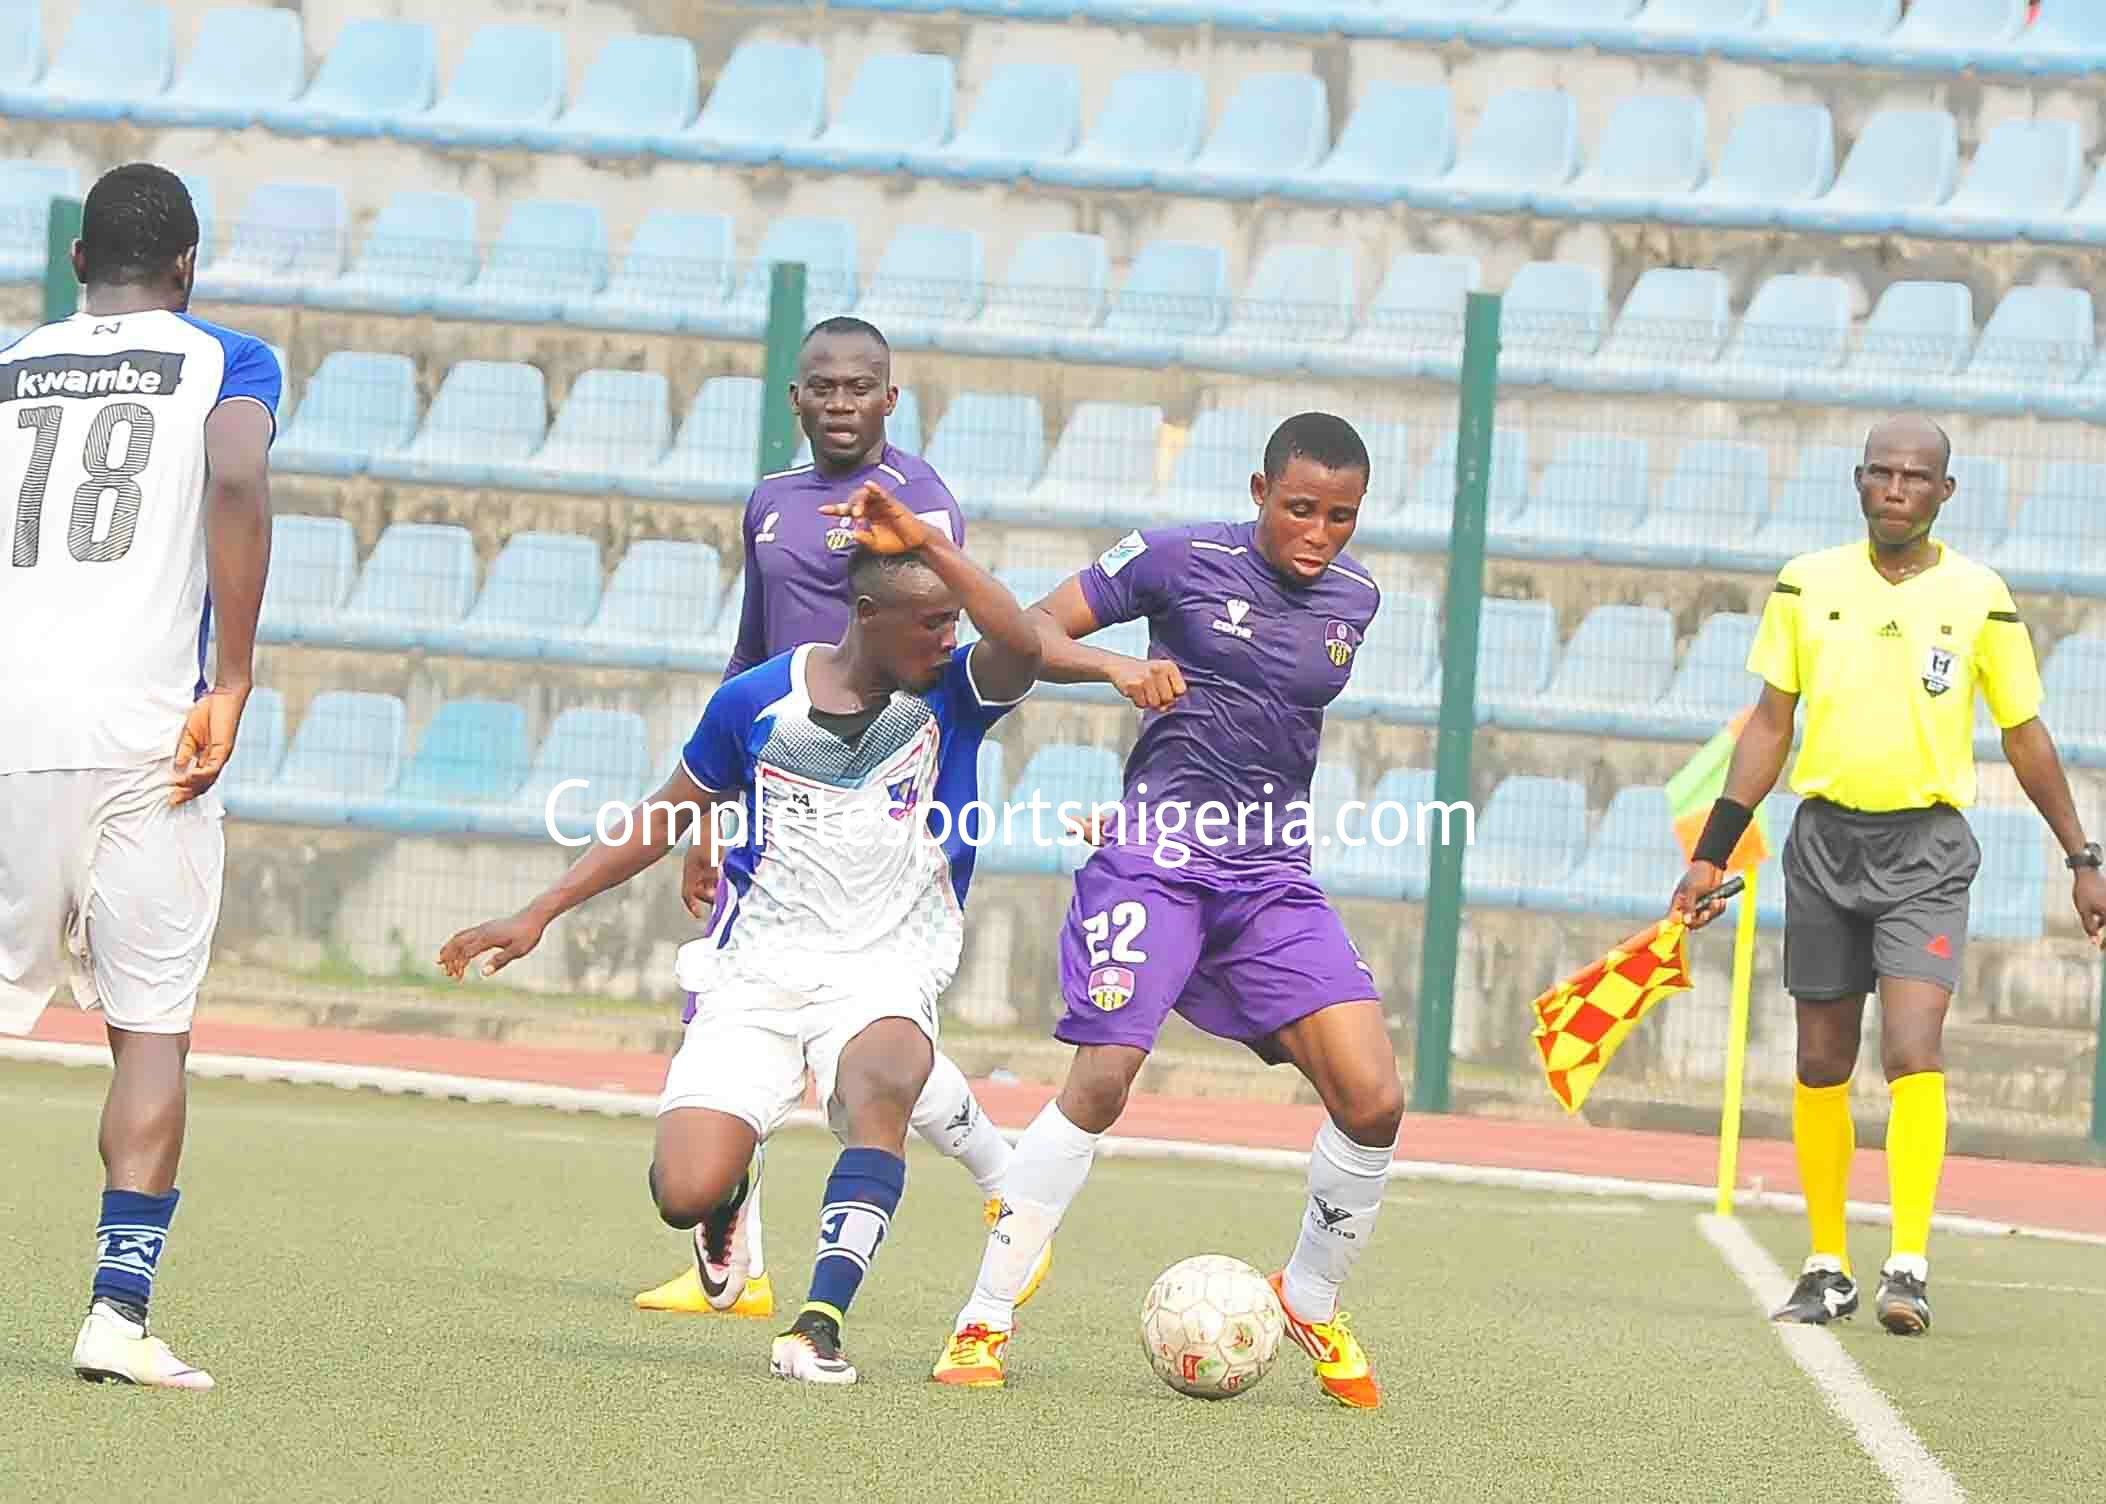 NPFL: Plateau United Aim To Stay Unbeaten, MFM Welcome Pillars